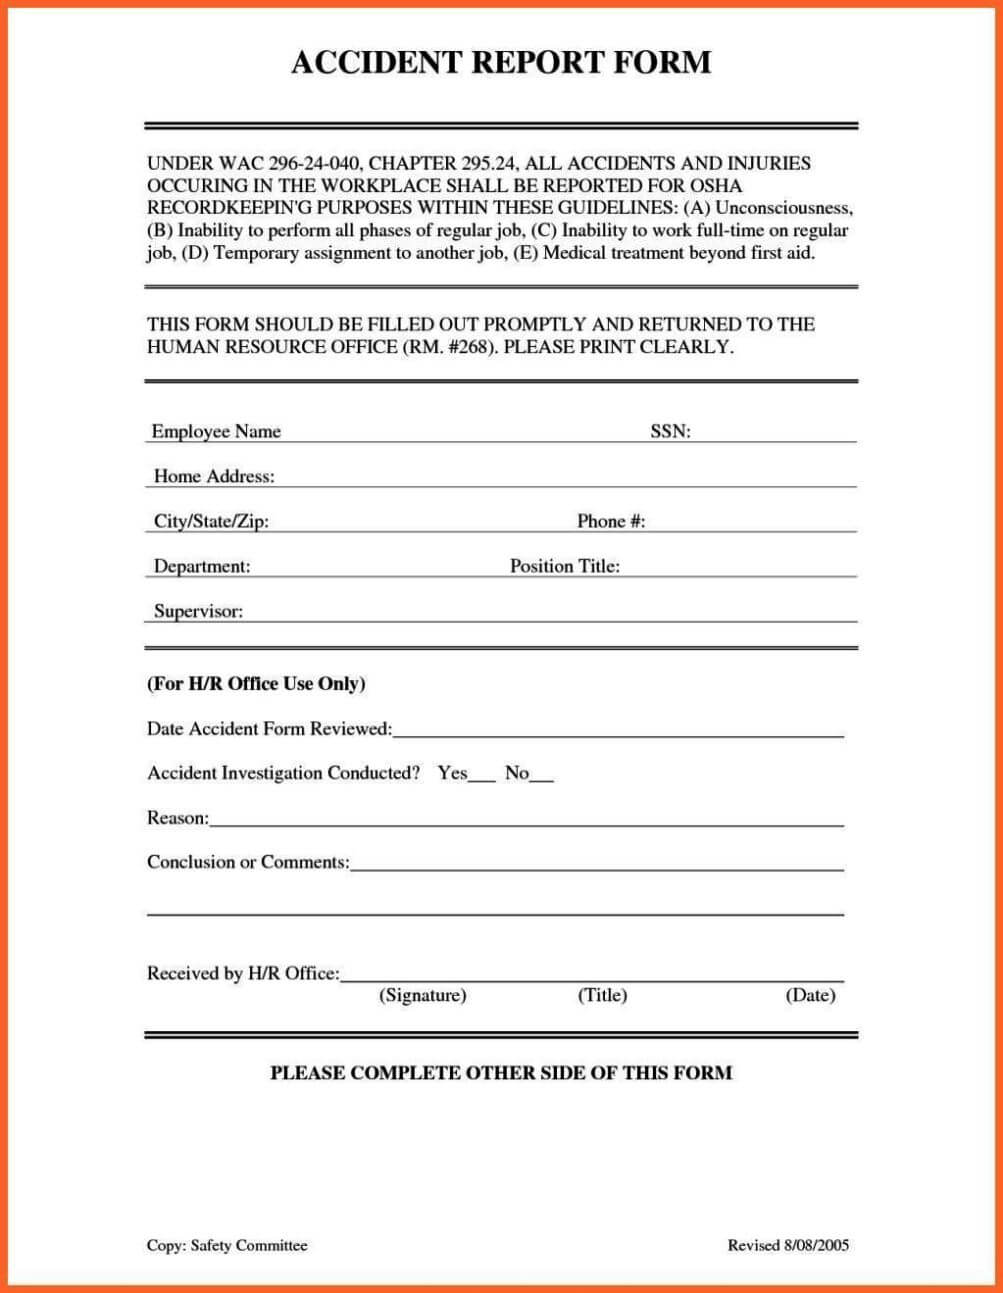 Accident Book Template - Www.toib.tk with regard to Incident Report Book Template